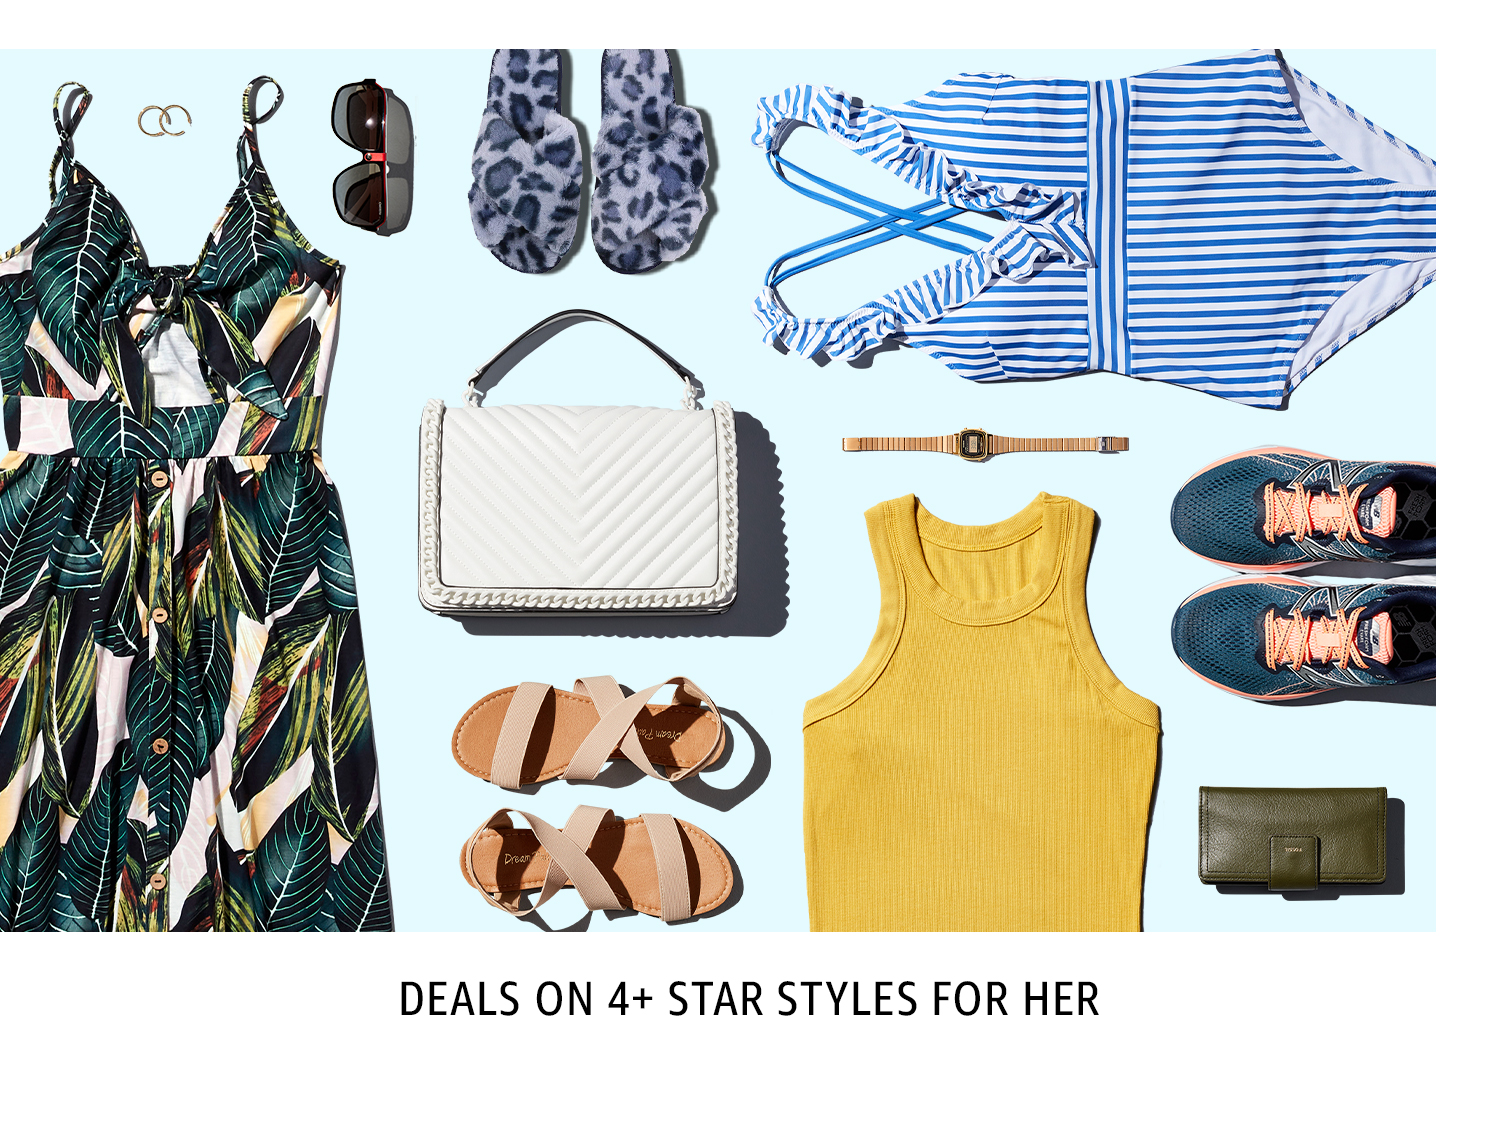 Deals on 4+ Star Styles for Her